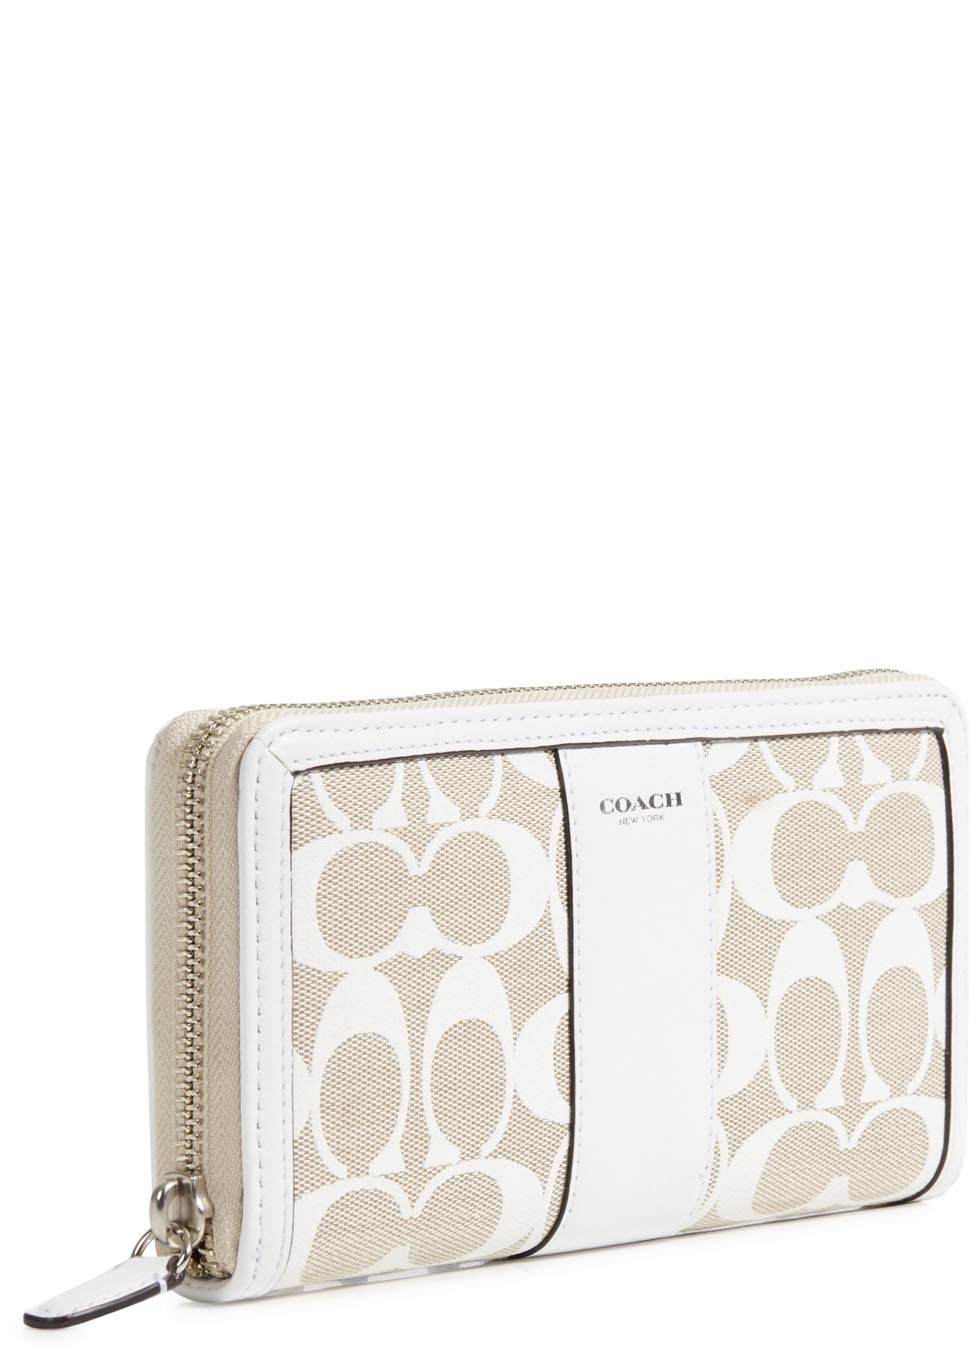 f0b886d3c382 COACH Cream Canvas And Leather Wallet in Natural - Lyst